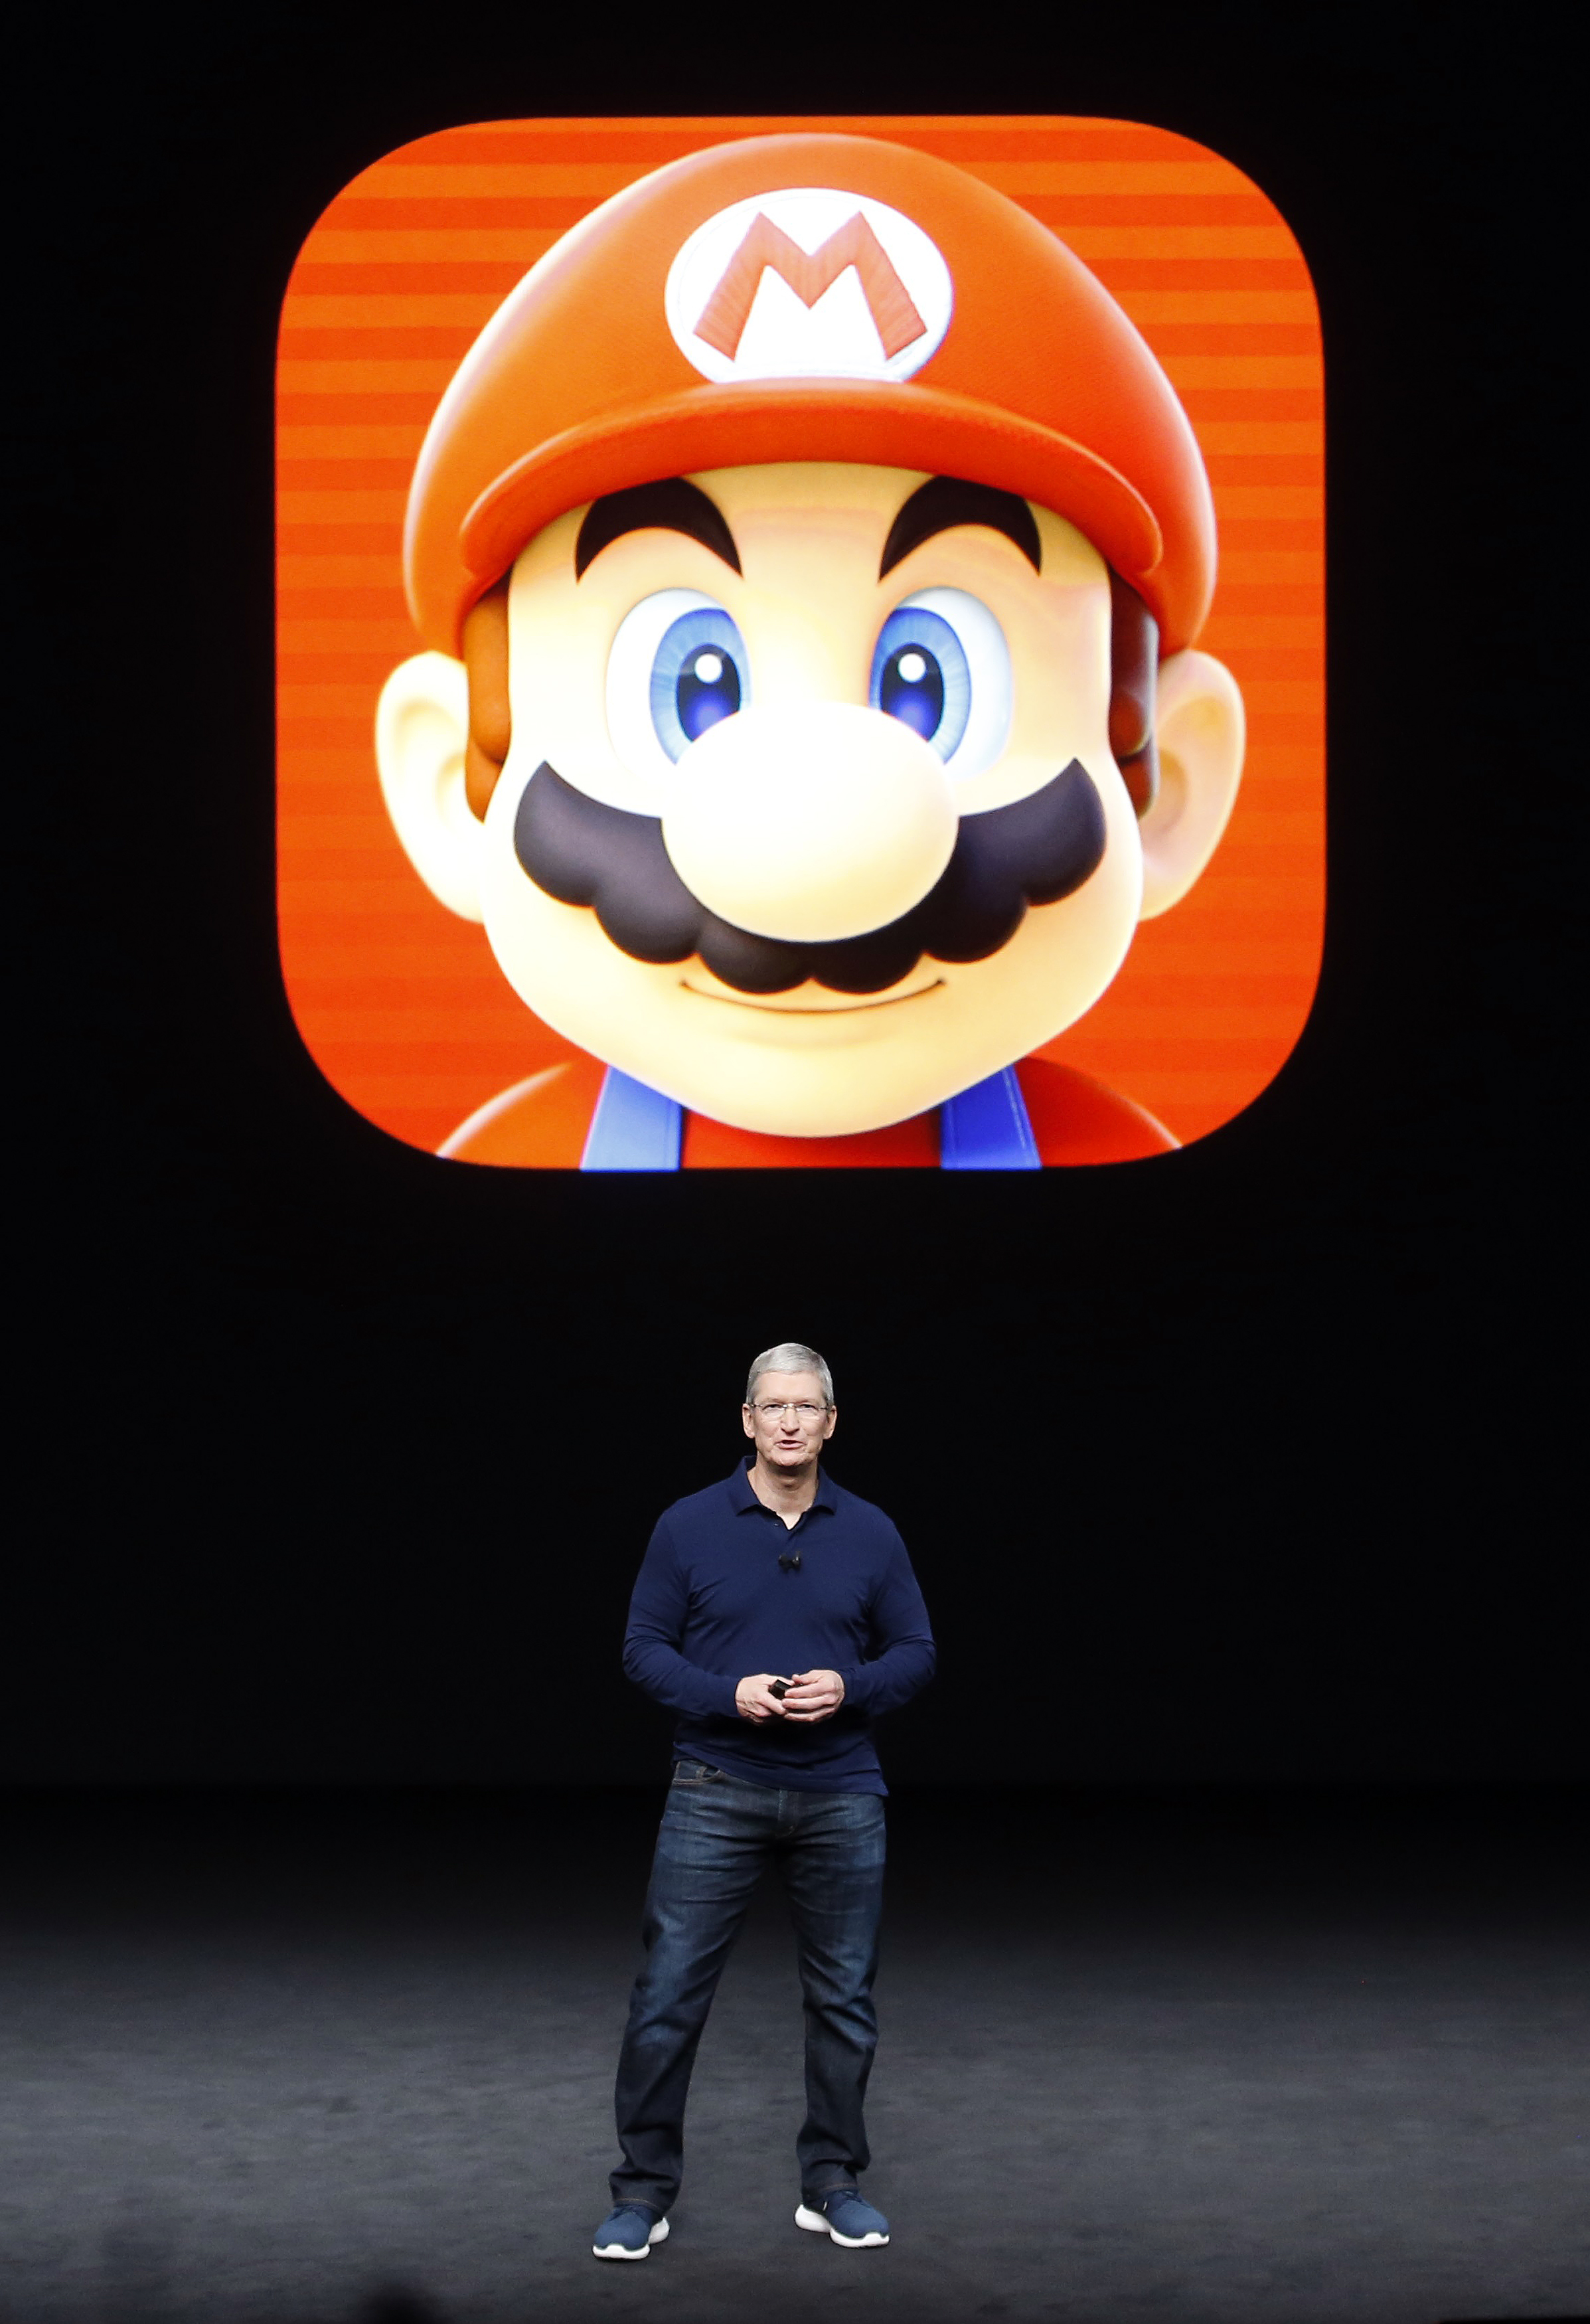 Tim Cook speaks in front of a Mario Bros. image during an Apple media event in San Francisco